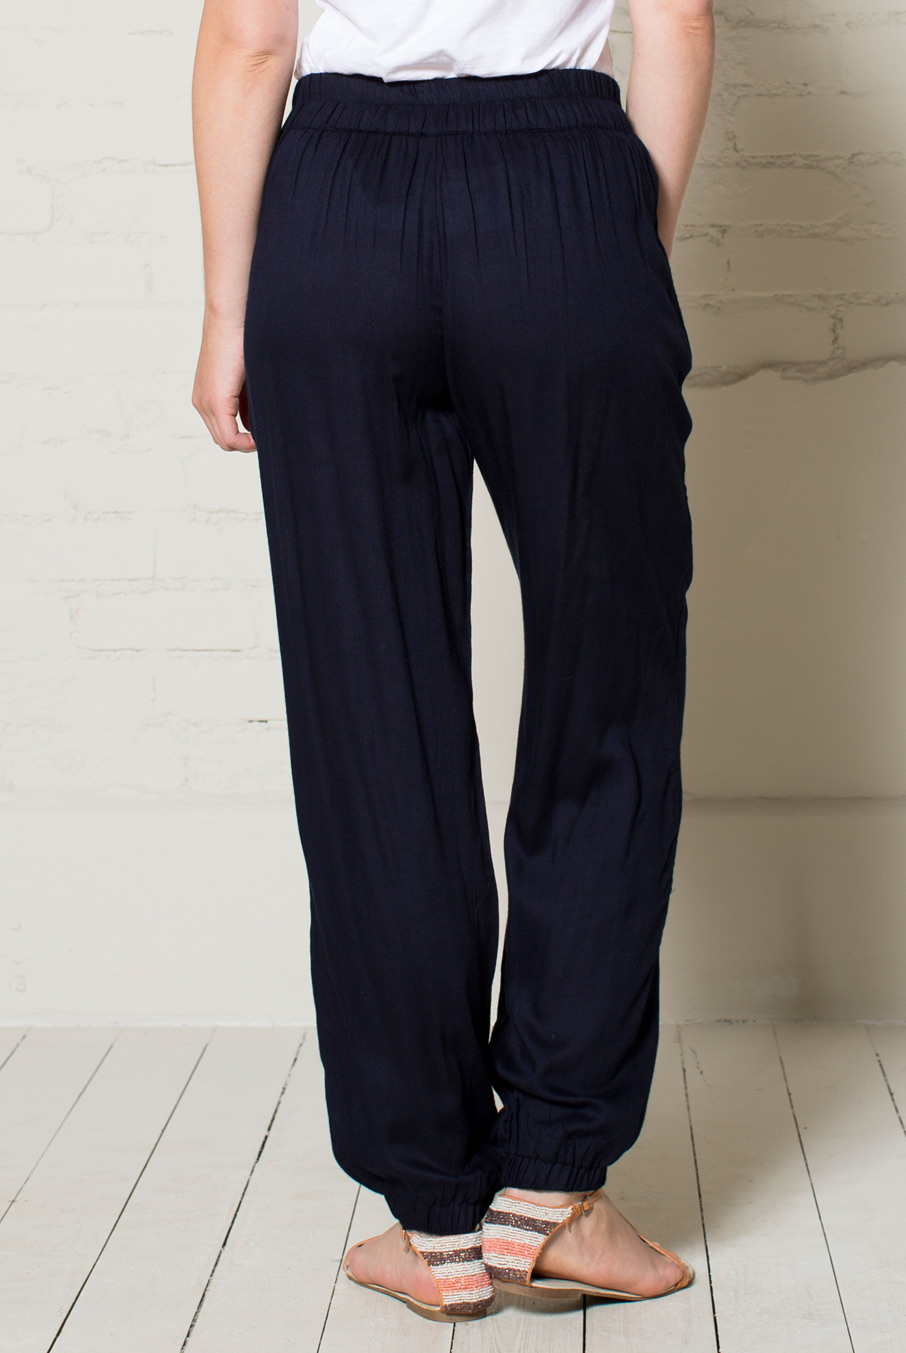 Find great deals on eBay for harem trousers. Shop with confidence.